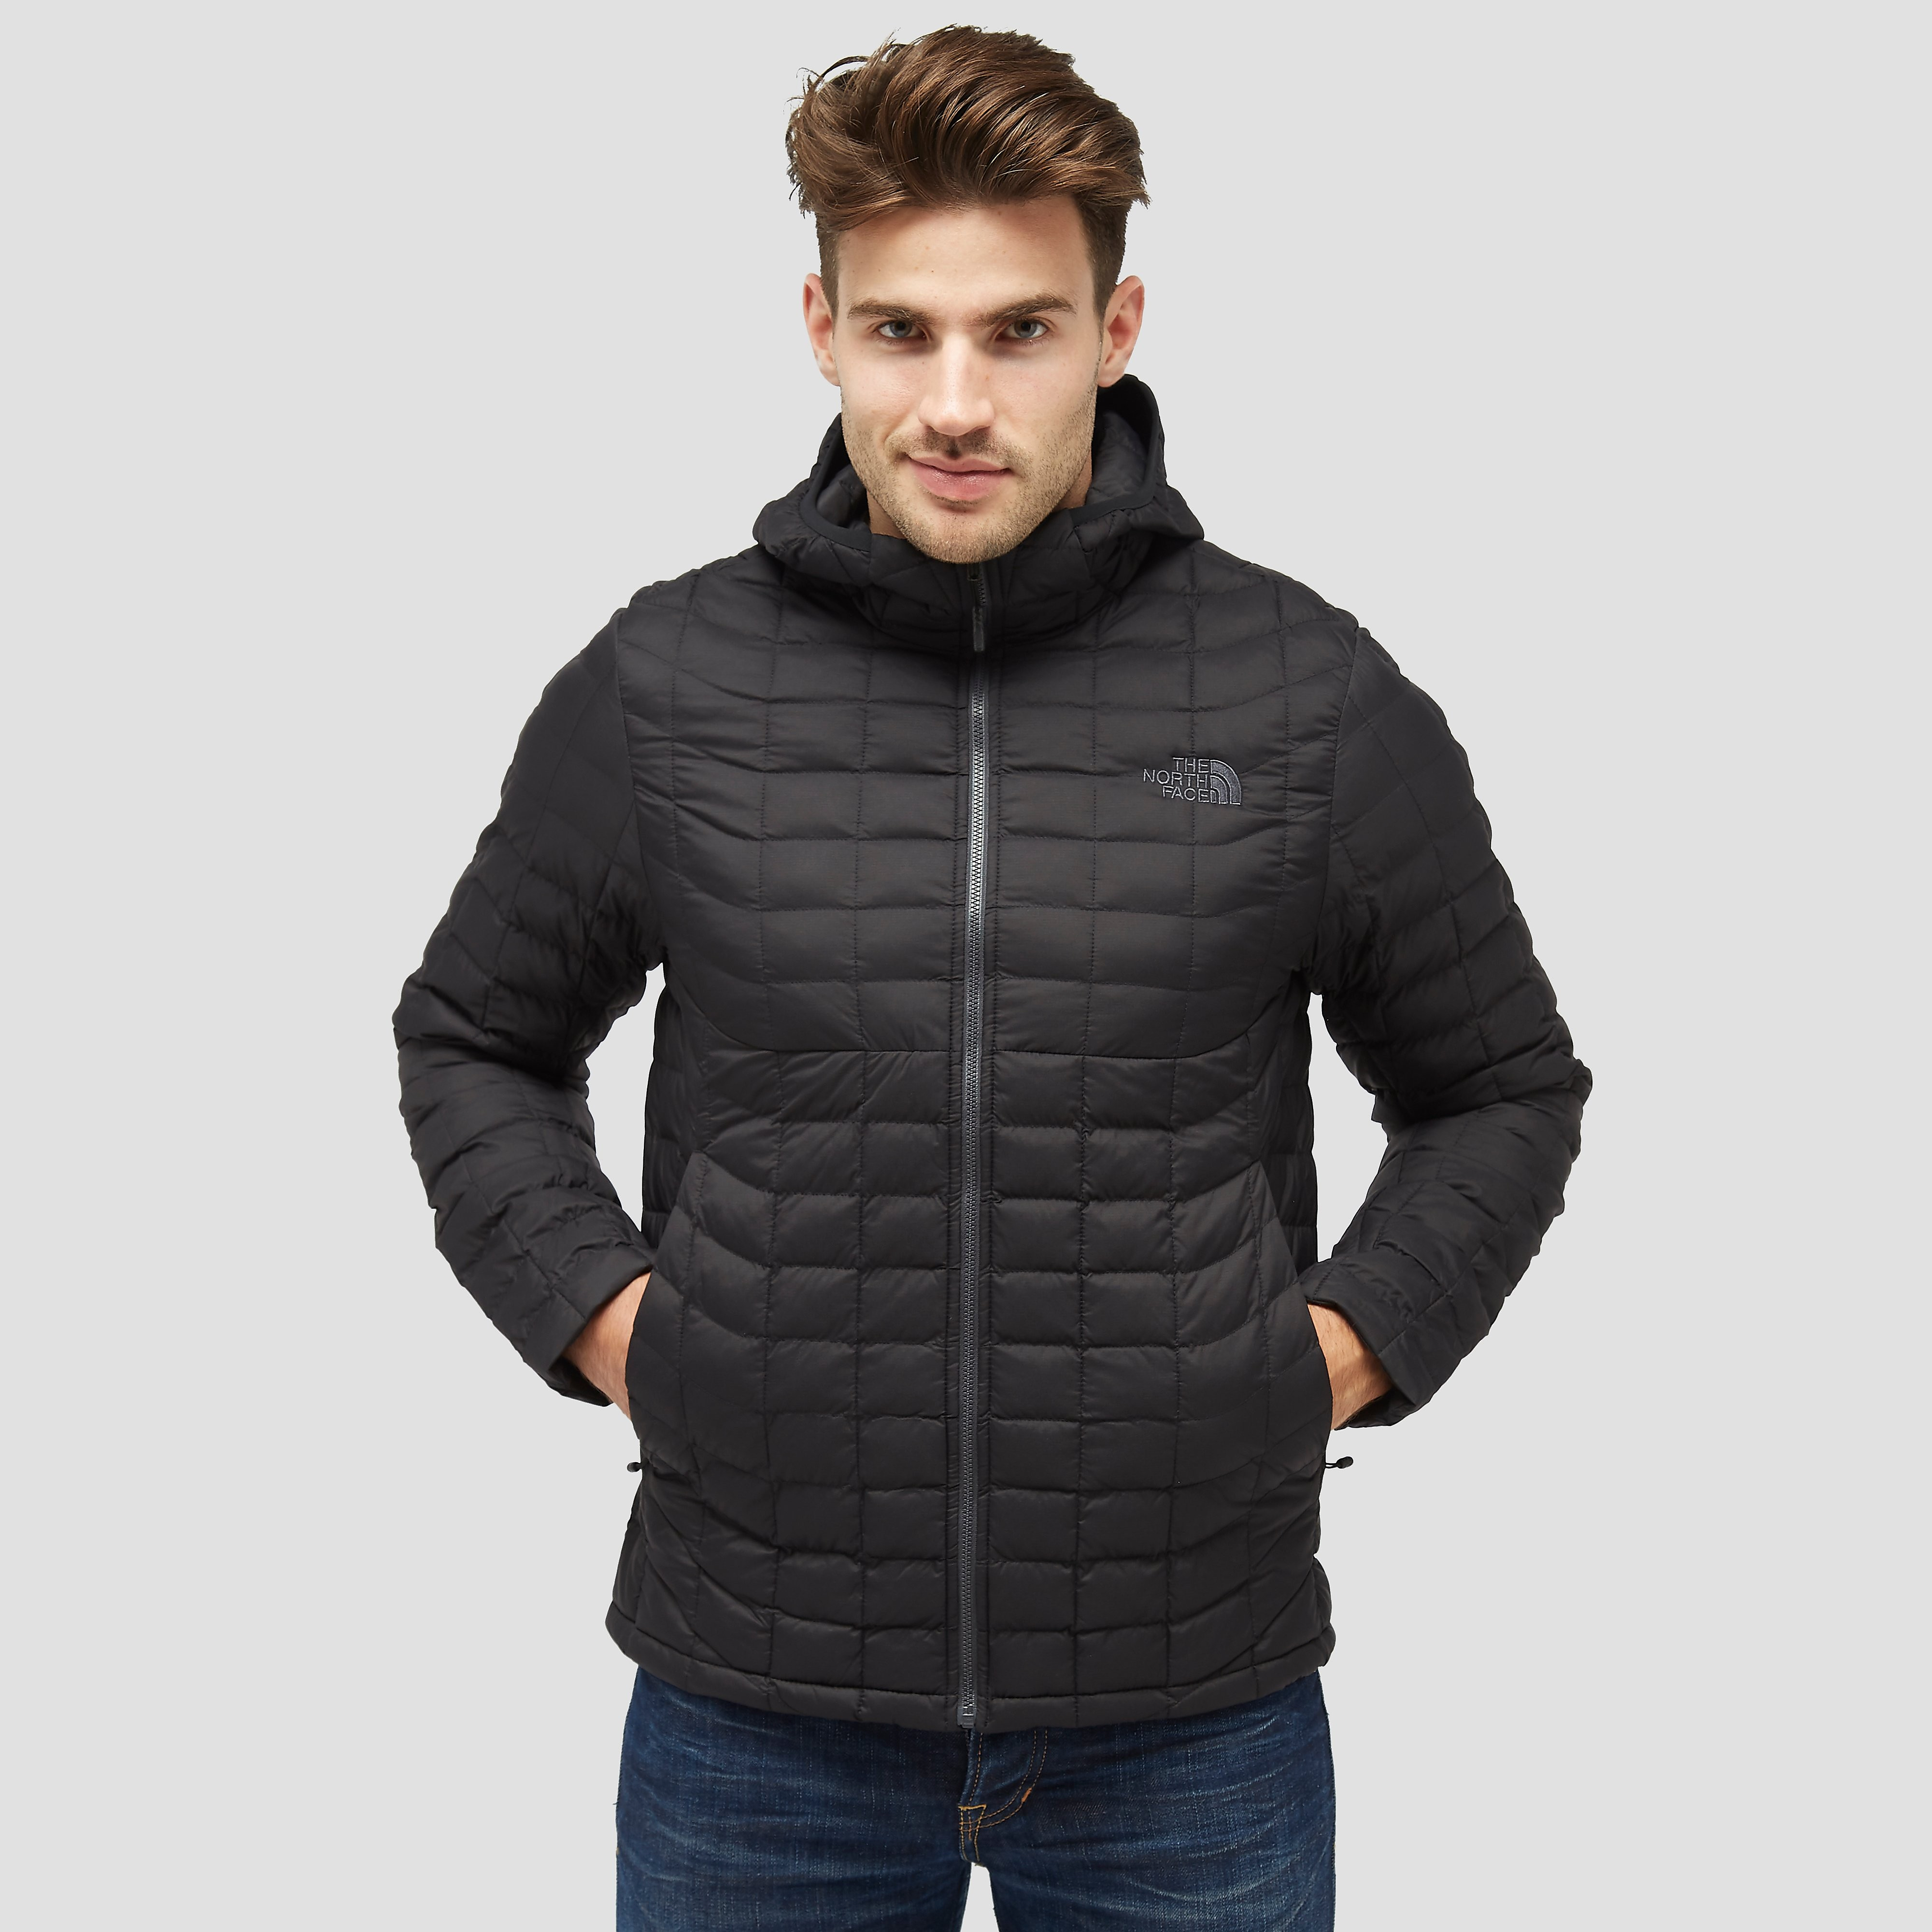 THE NORTH FACE THERMOBALL JAS ZWART HEREN